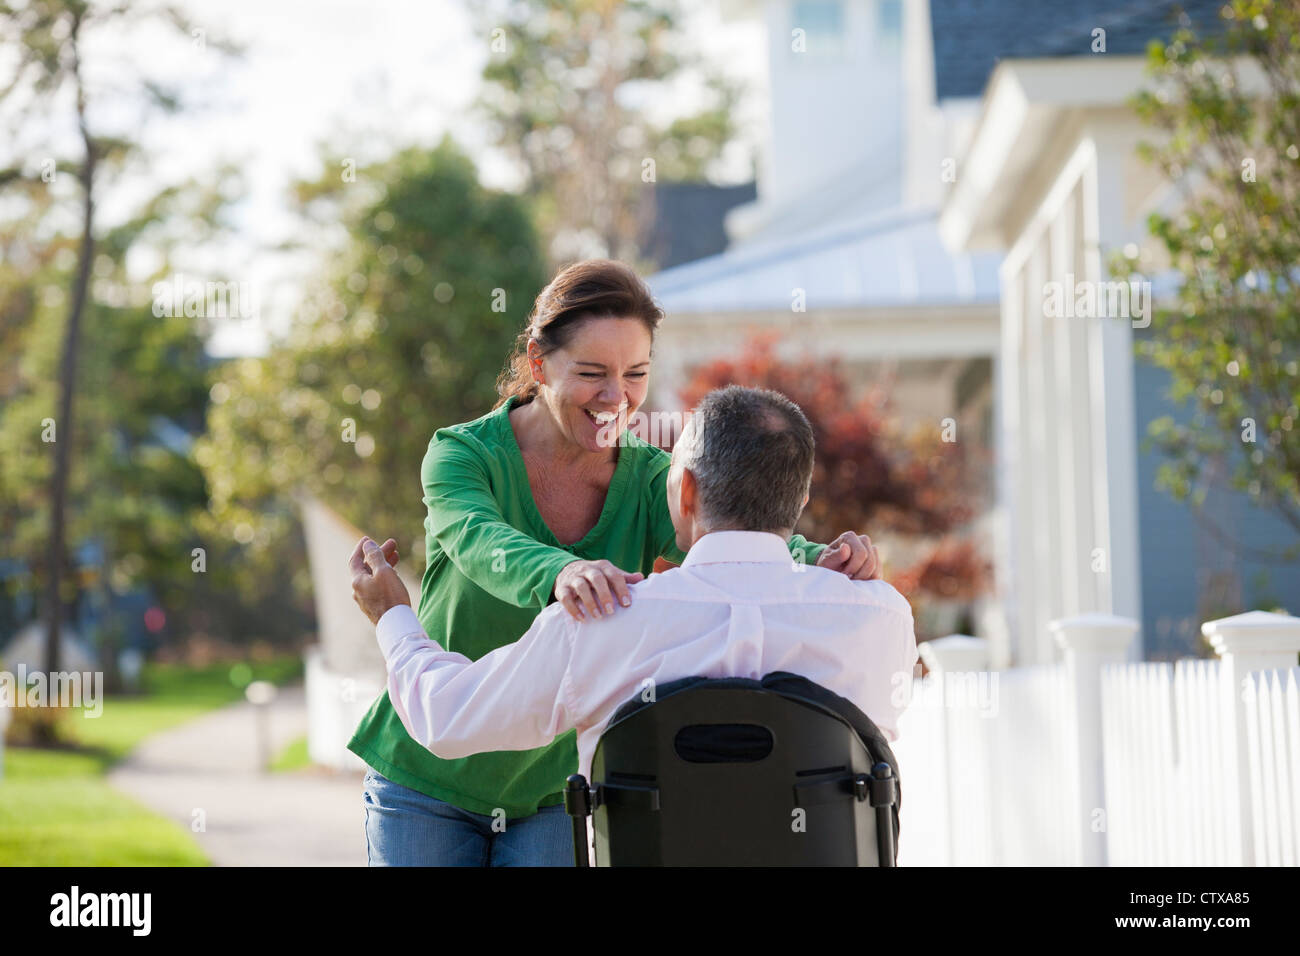 Couple happily greeting each other while he is in a wheelchair with a spinal cord injury - Stock Image